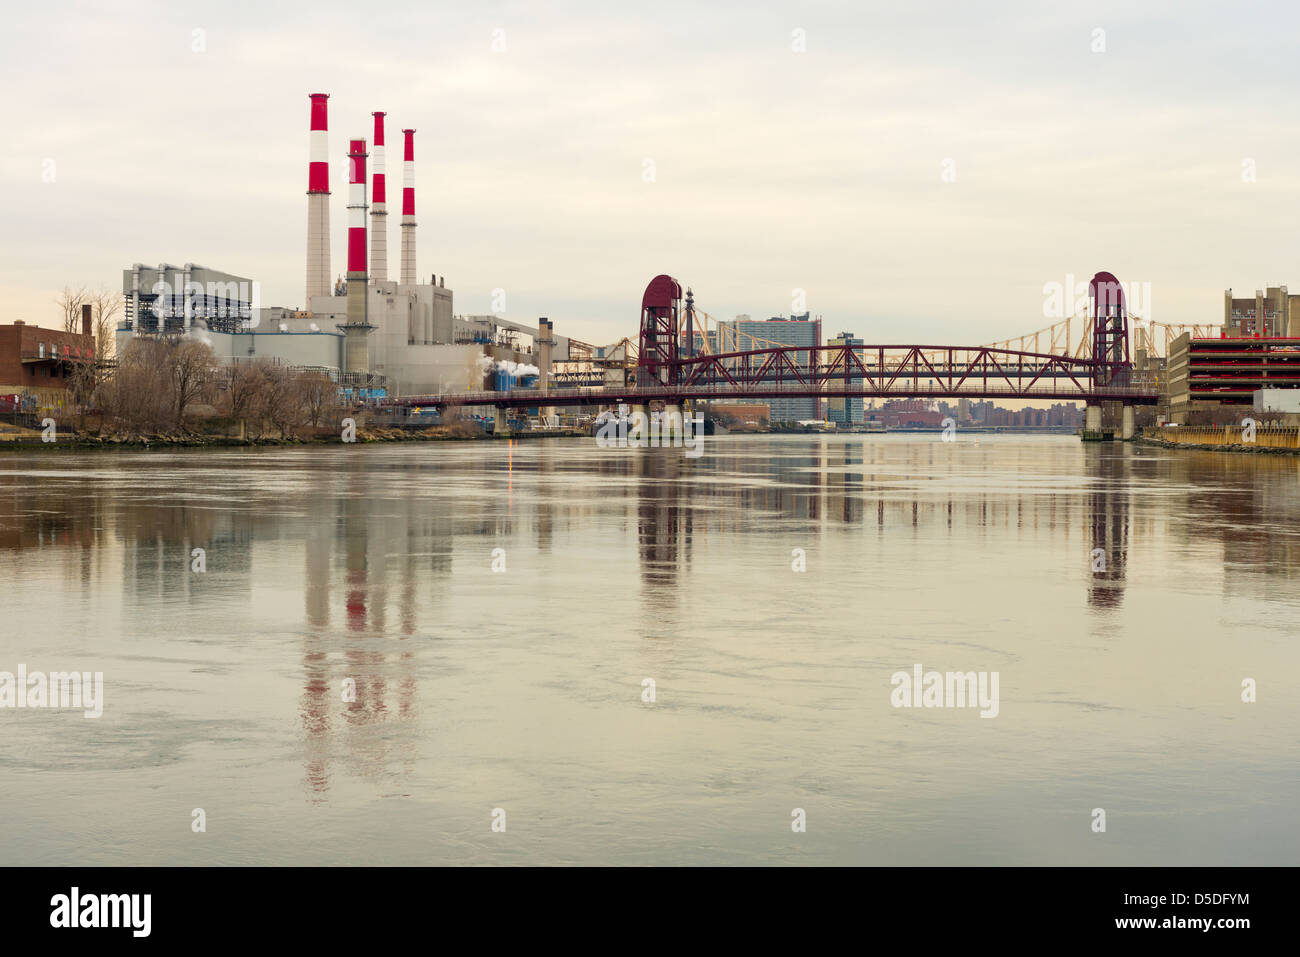 Roosevelt Island Bridge (1955) and Ravenswood Generating Station, Long Island City, Queens, New York seen from Roosevelt - Stock Image